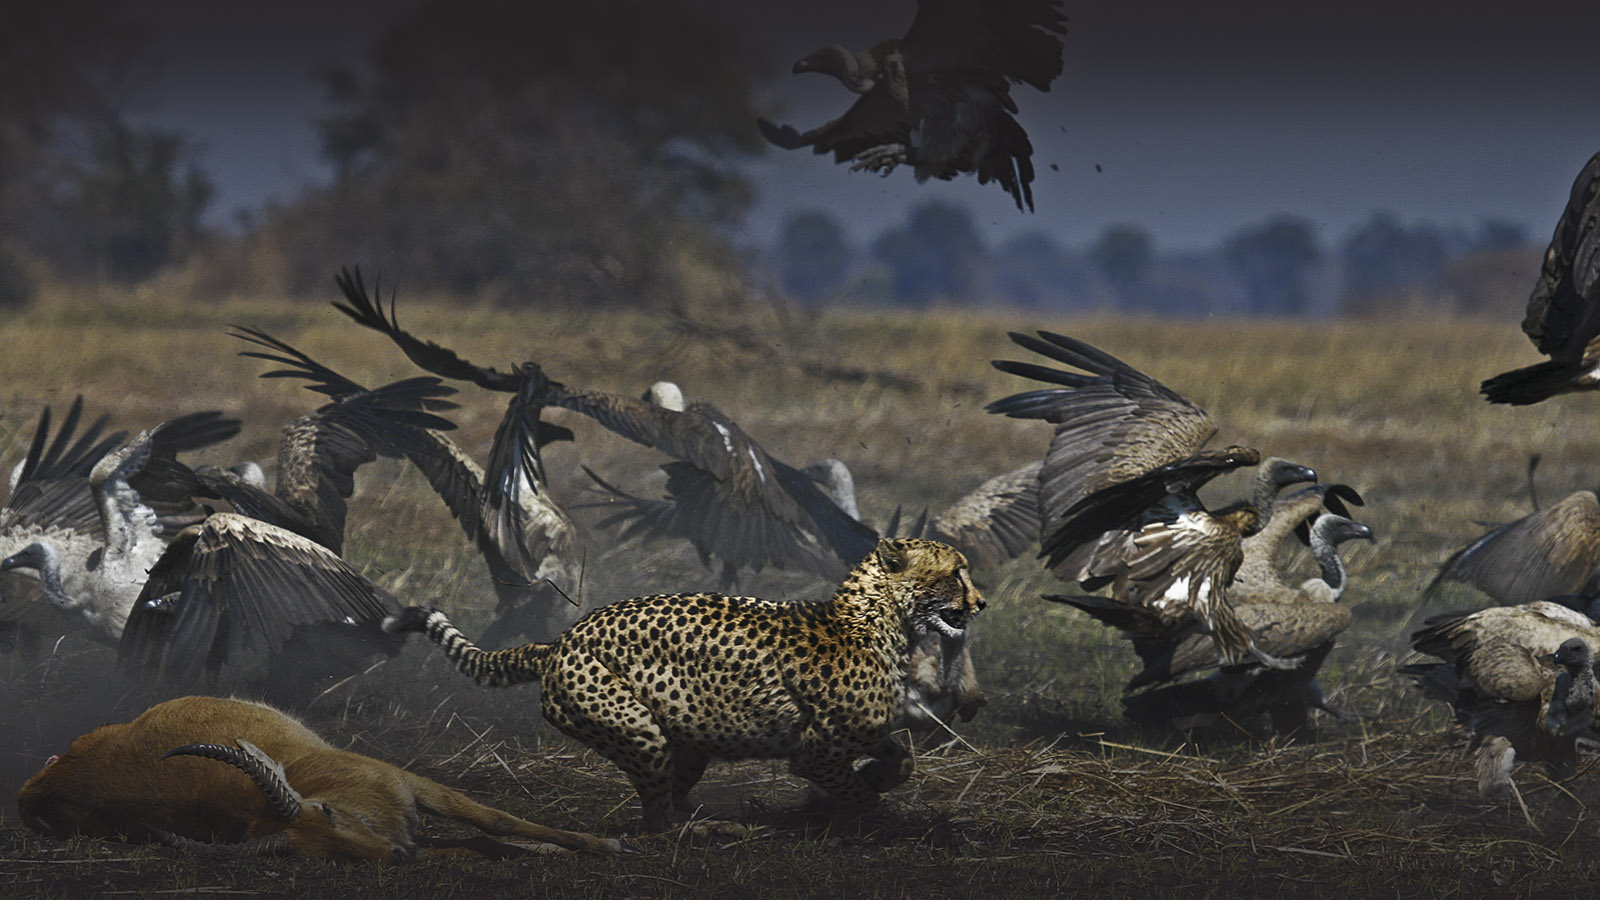 musekese-camp-lodge-zambia-in-style-safari-packages-lodges-kafue-national-park-conservation-cheetah-vultures